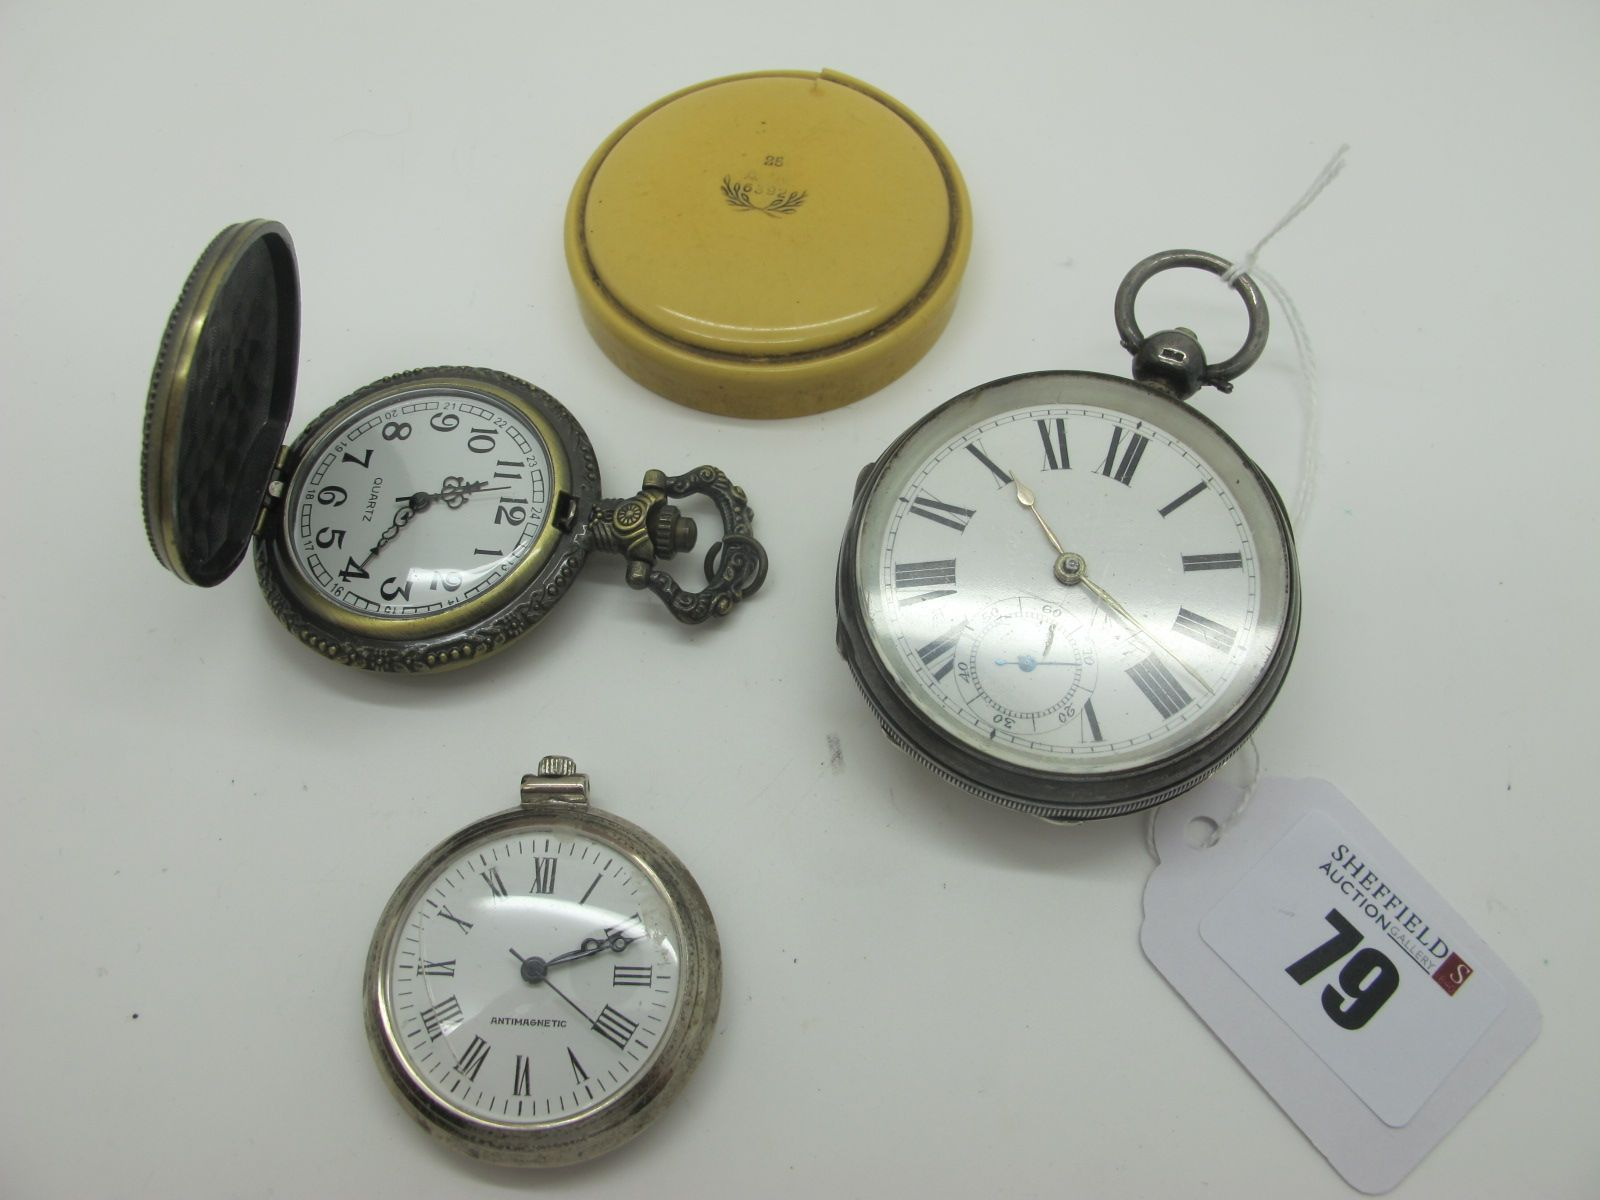 A Hallmarked Silver Cased Openface Pocketwatch, the white dial with black Roman numerals and seconds